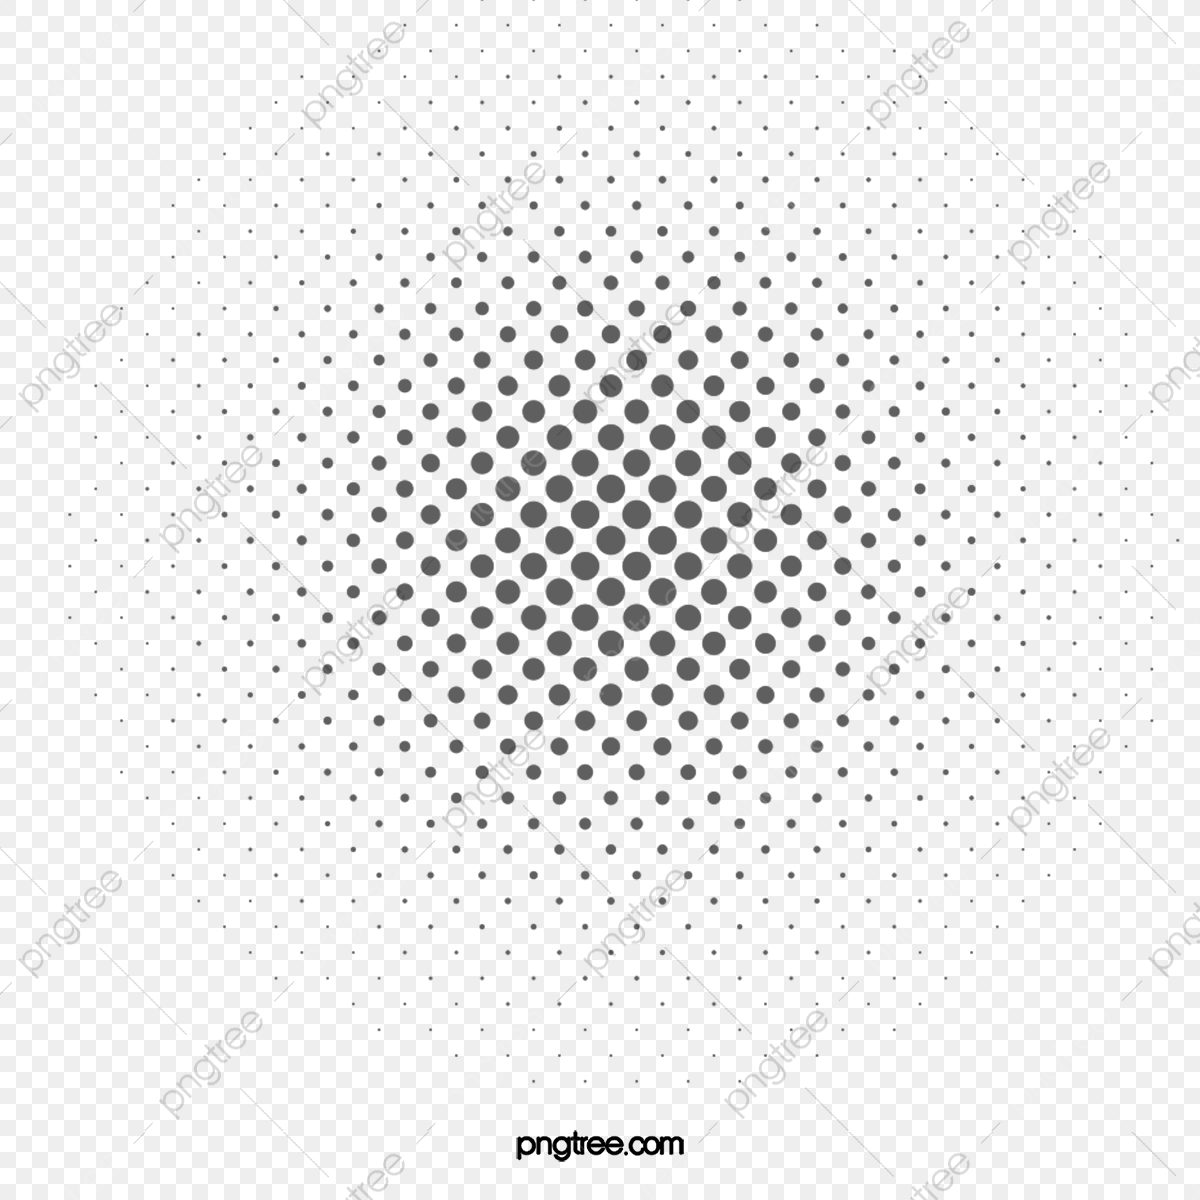 Dot clipart vector. Polka pattern background png